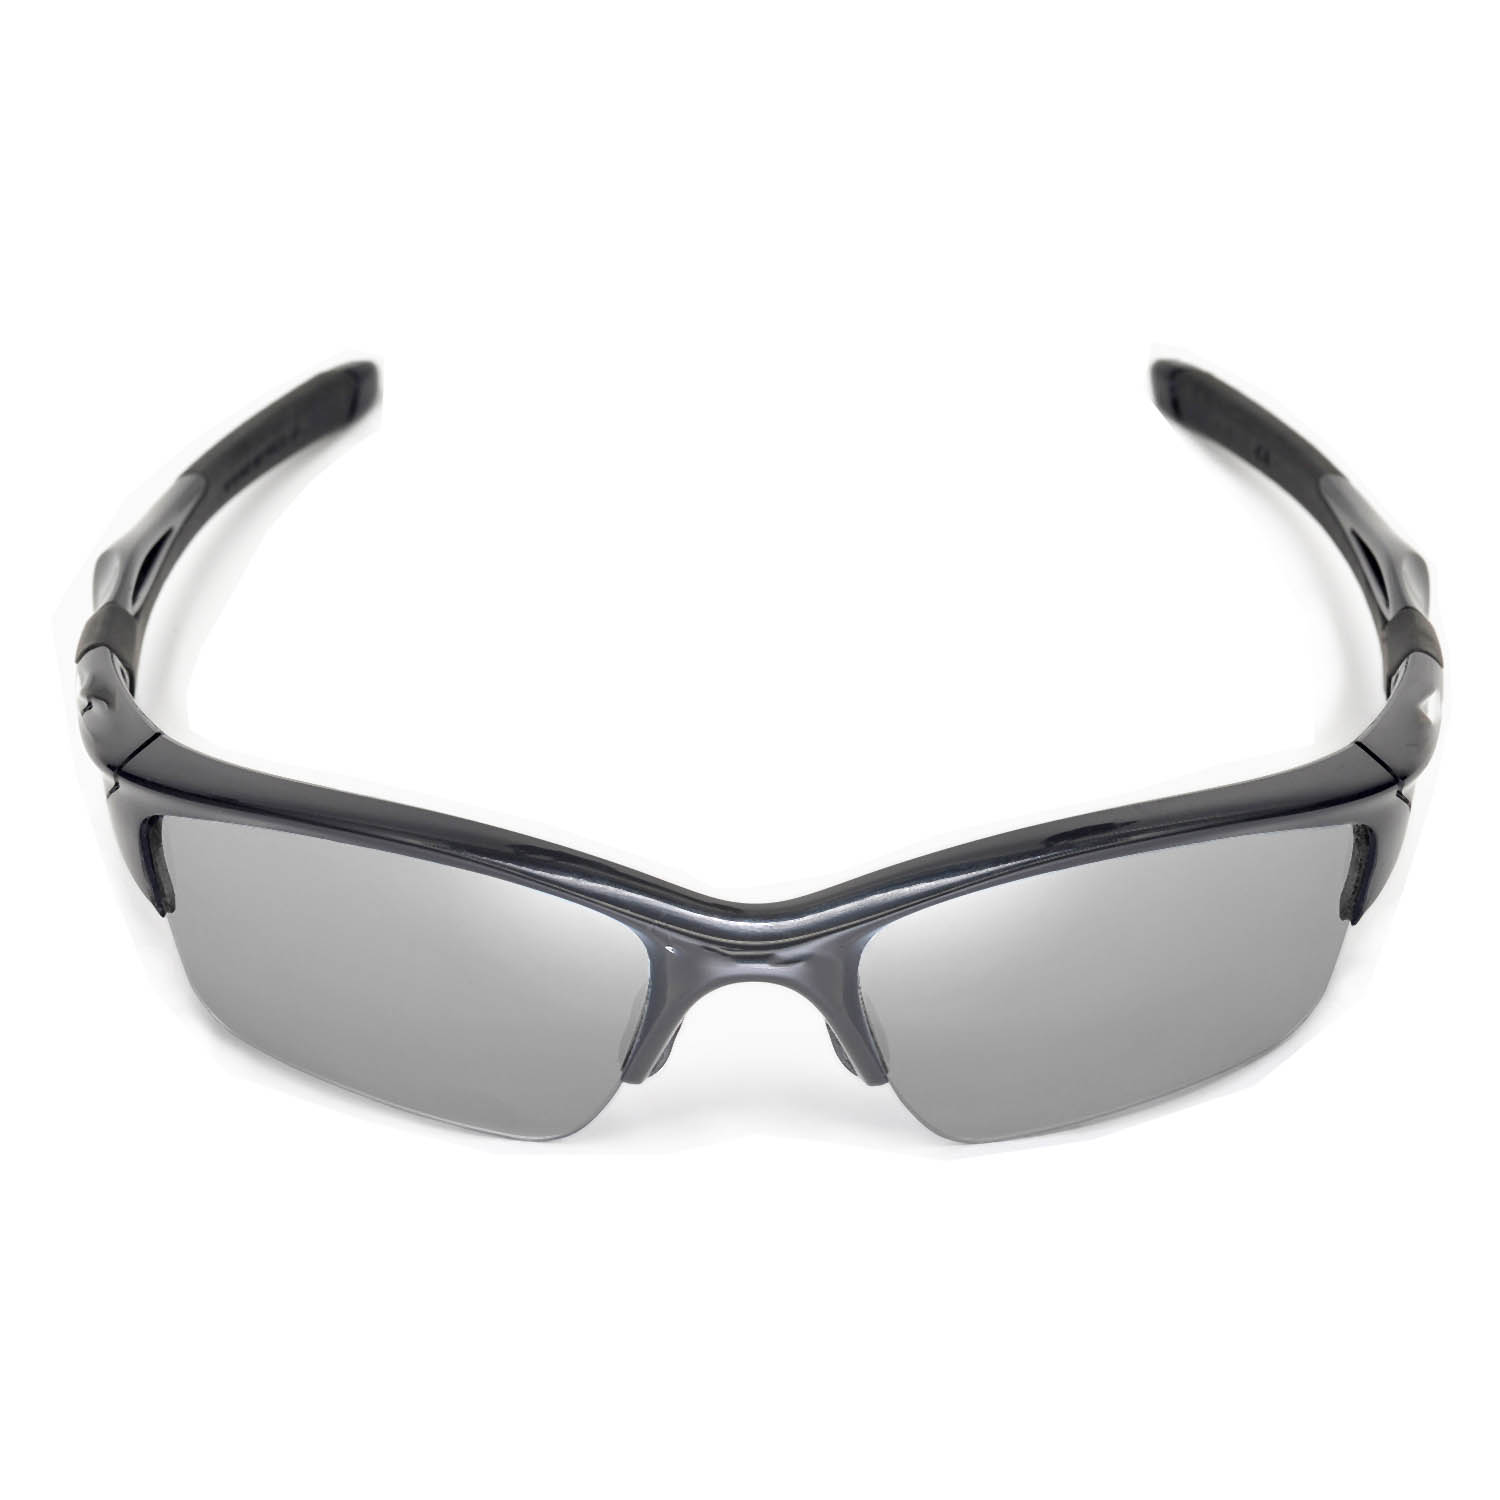 ccd5d53471 How To Replace Oakley Half Jacket 2.0 Lenses